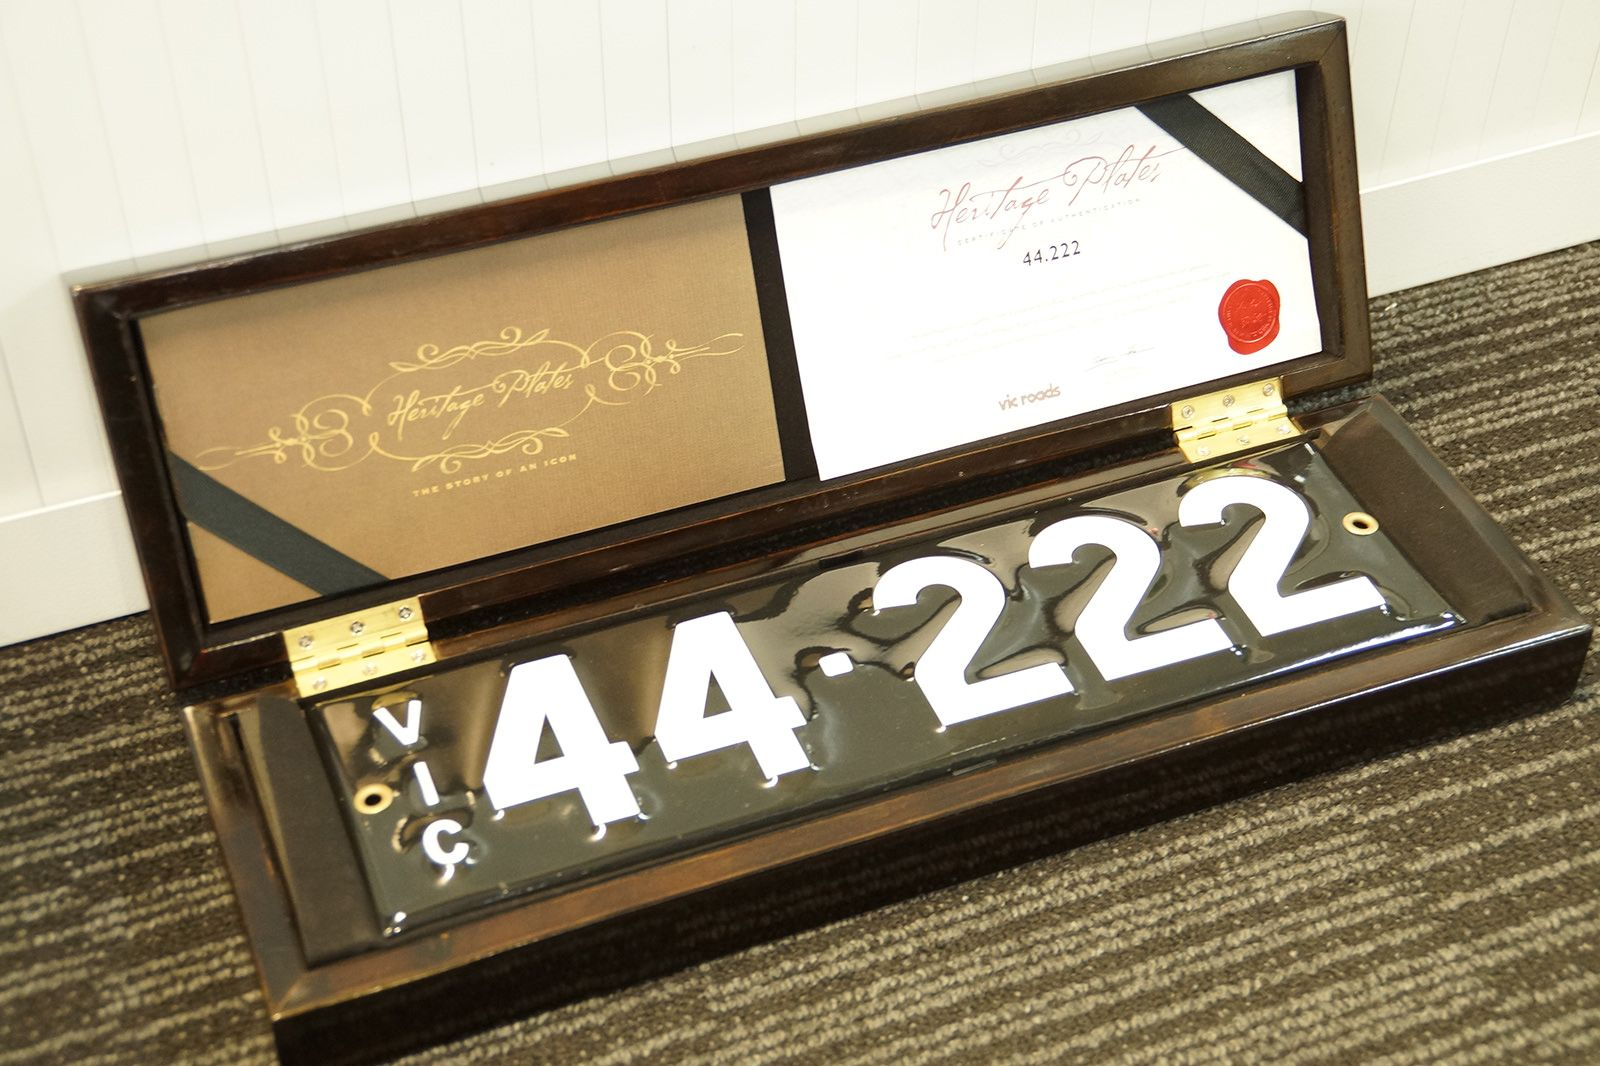 Number Plates - Victorian Numerical Number Plates - '44-222'